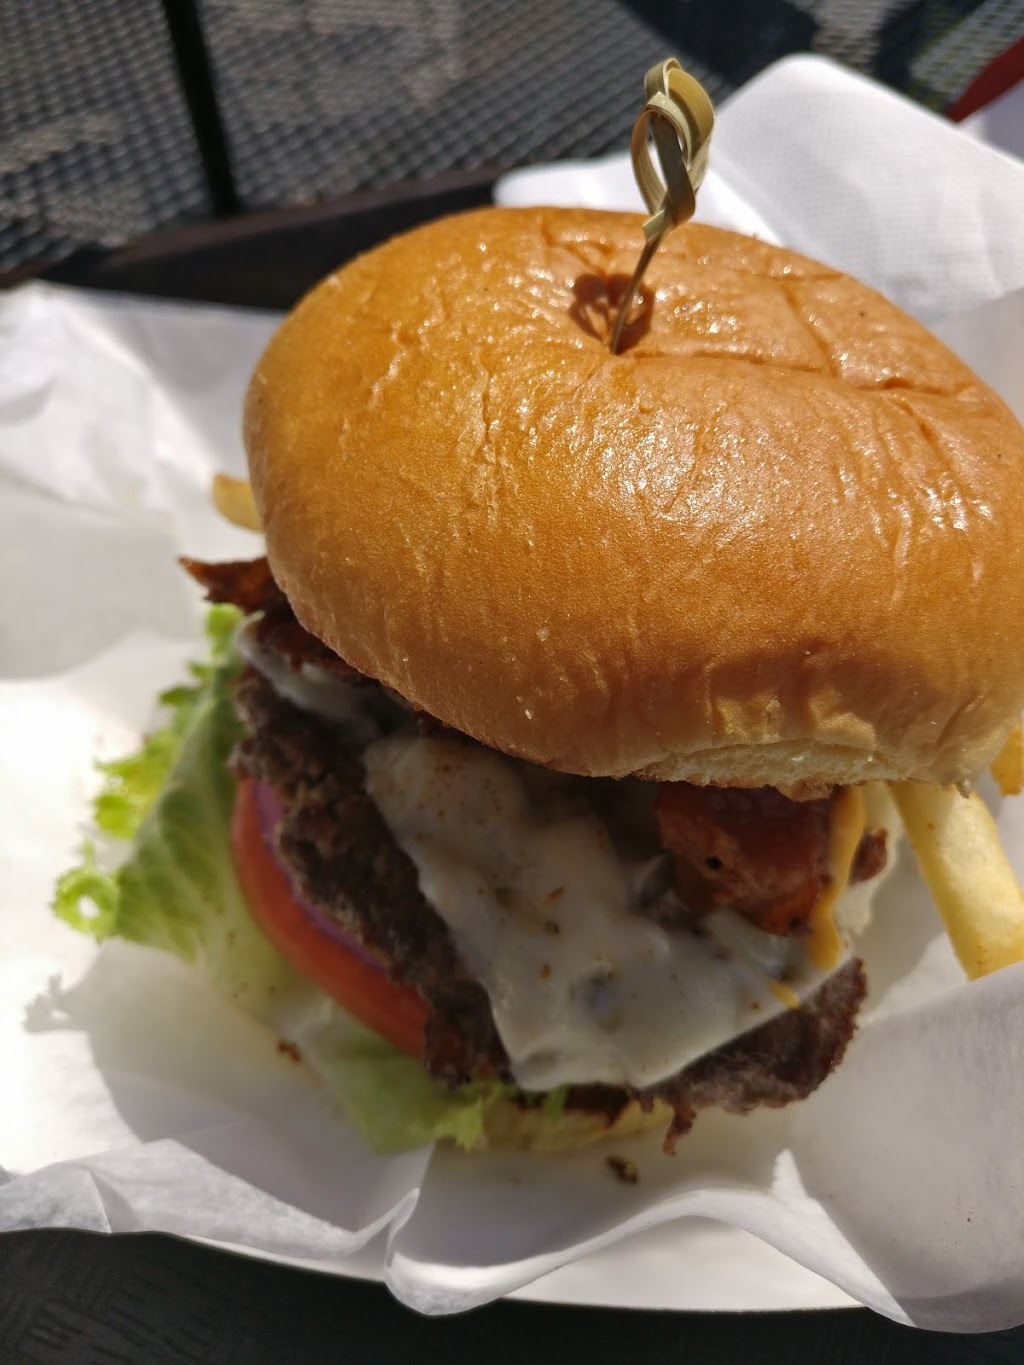 The Salty Cow | restaurant | 840 Street Rd, West Chester, PA 19382, USA | 6103990900 OR +1 610-399-0900